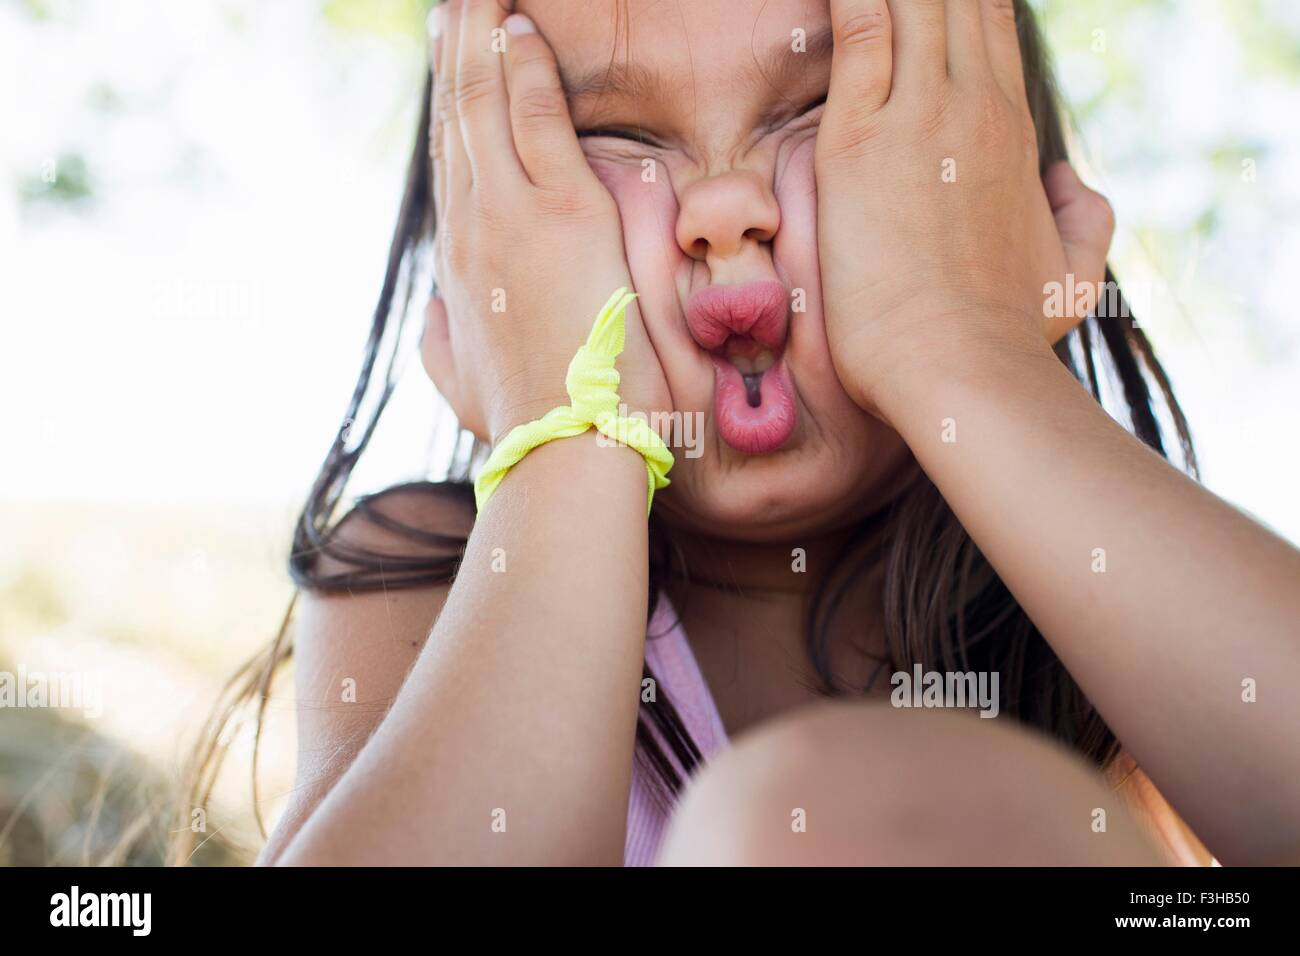 Portrait of girl squashing her face - Stock Image